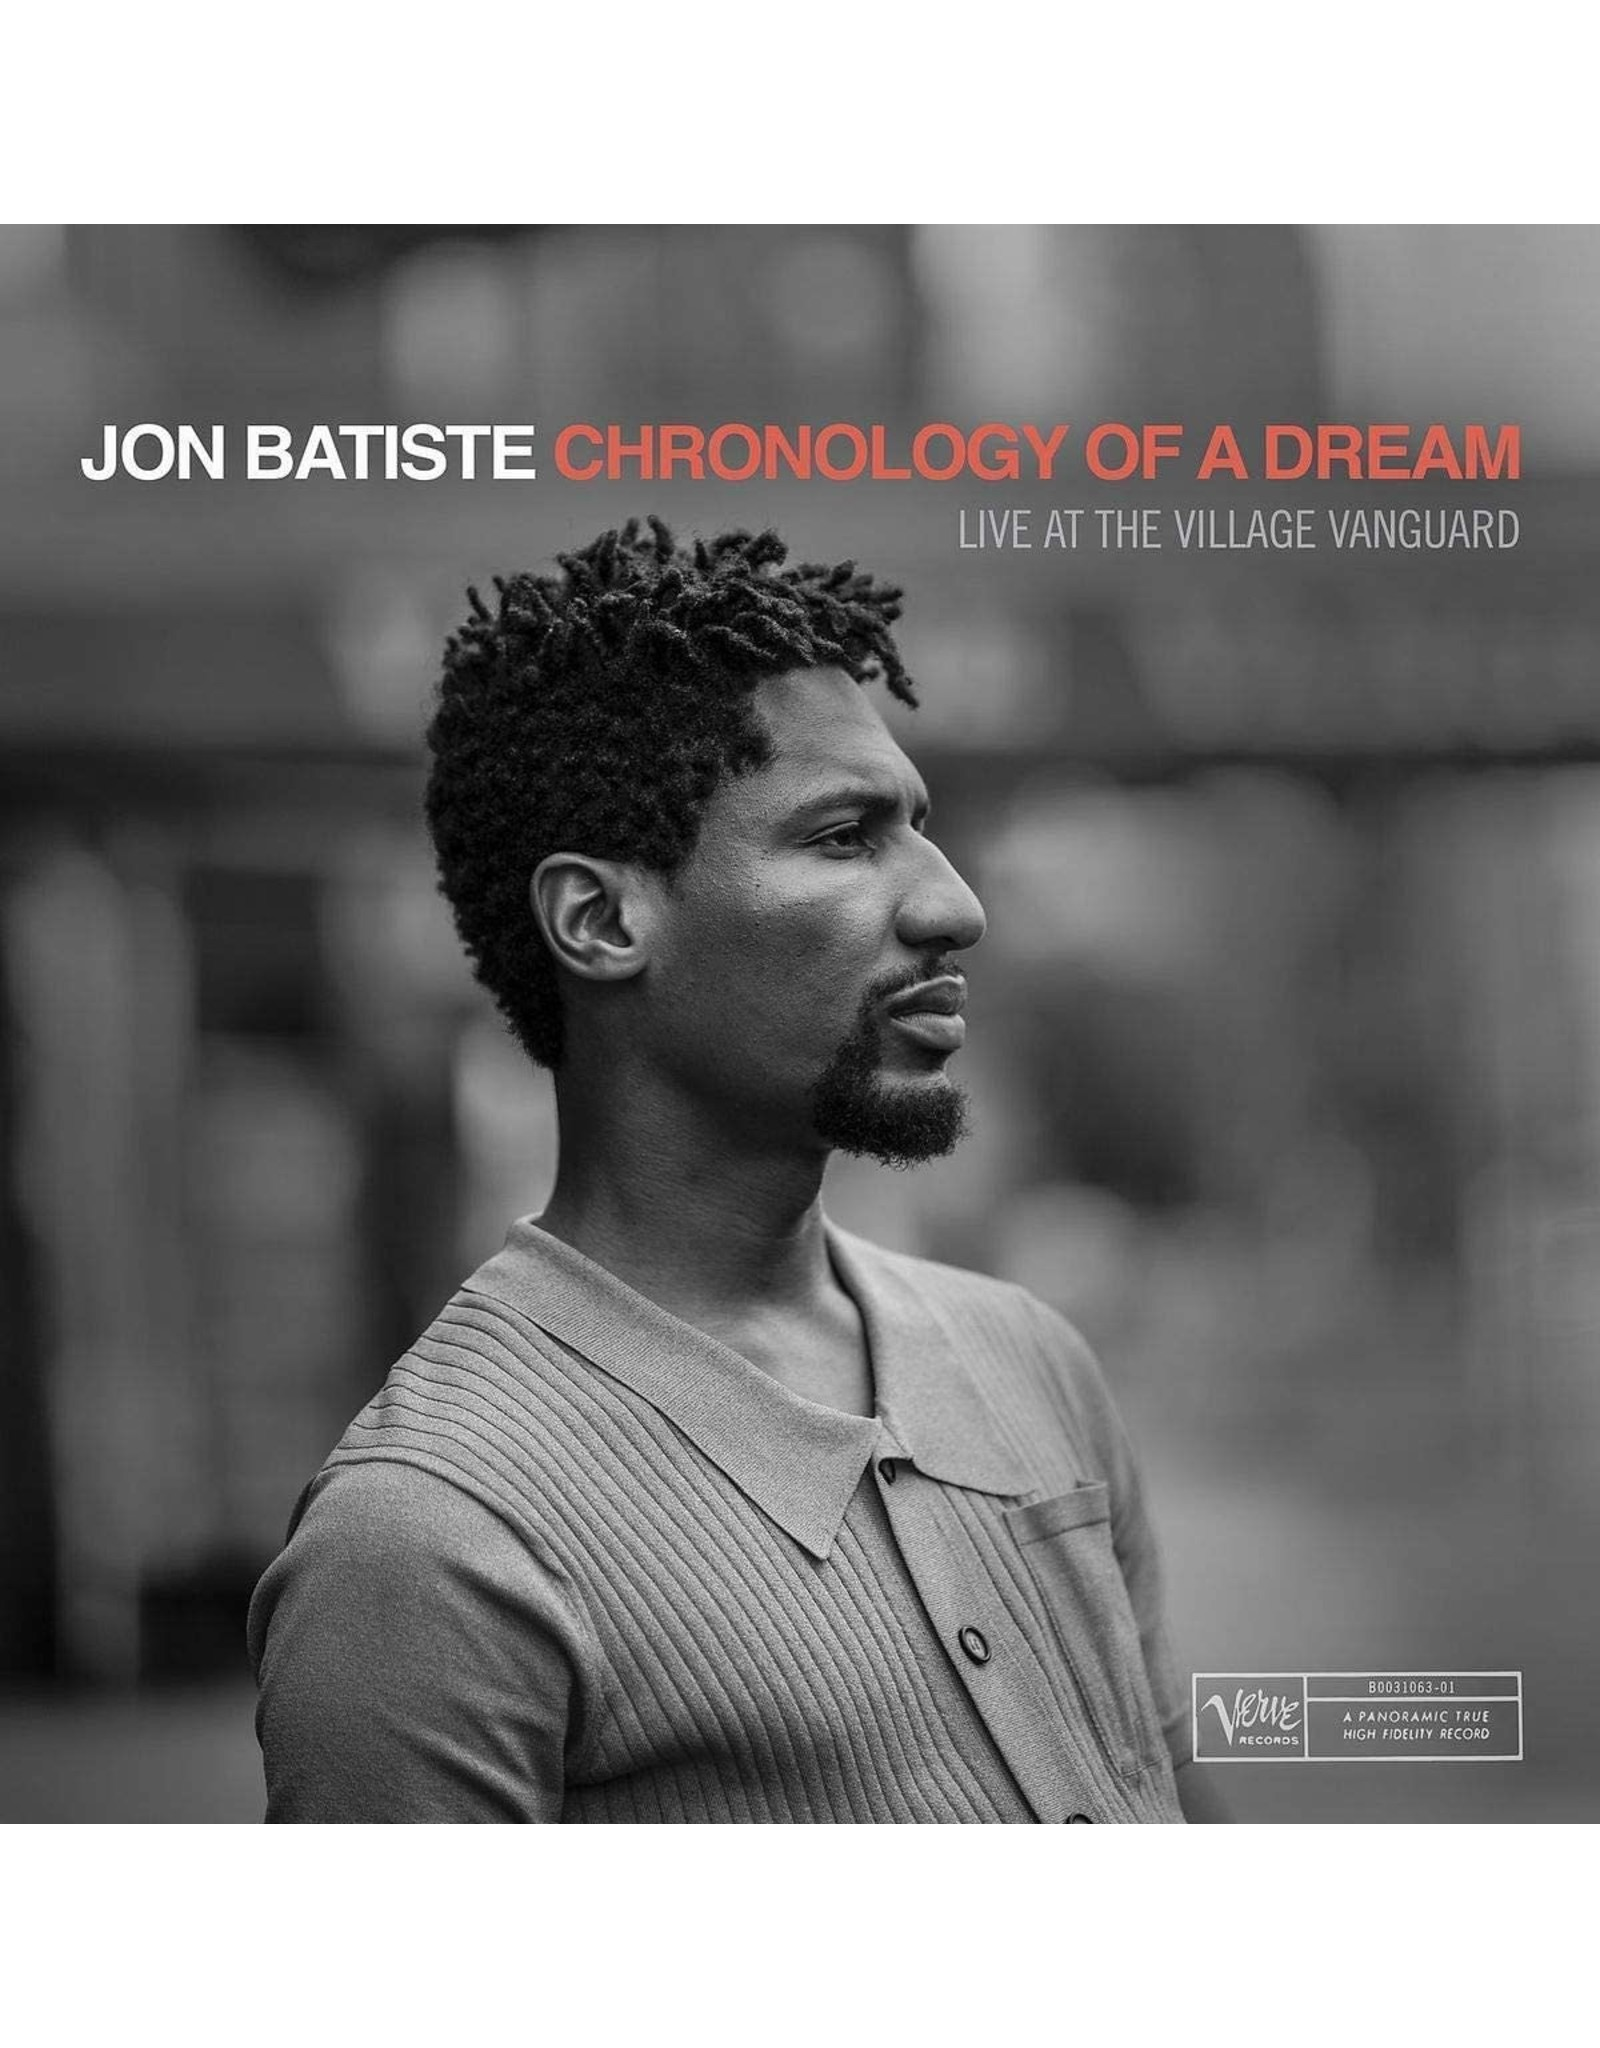 Jon Batiste - Chronology of a Dream (Live At The Village Vanguard)